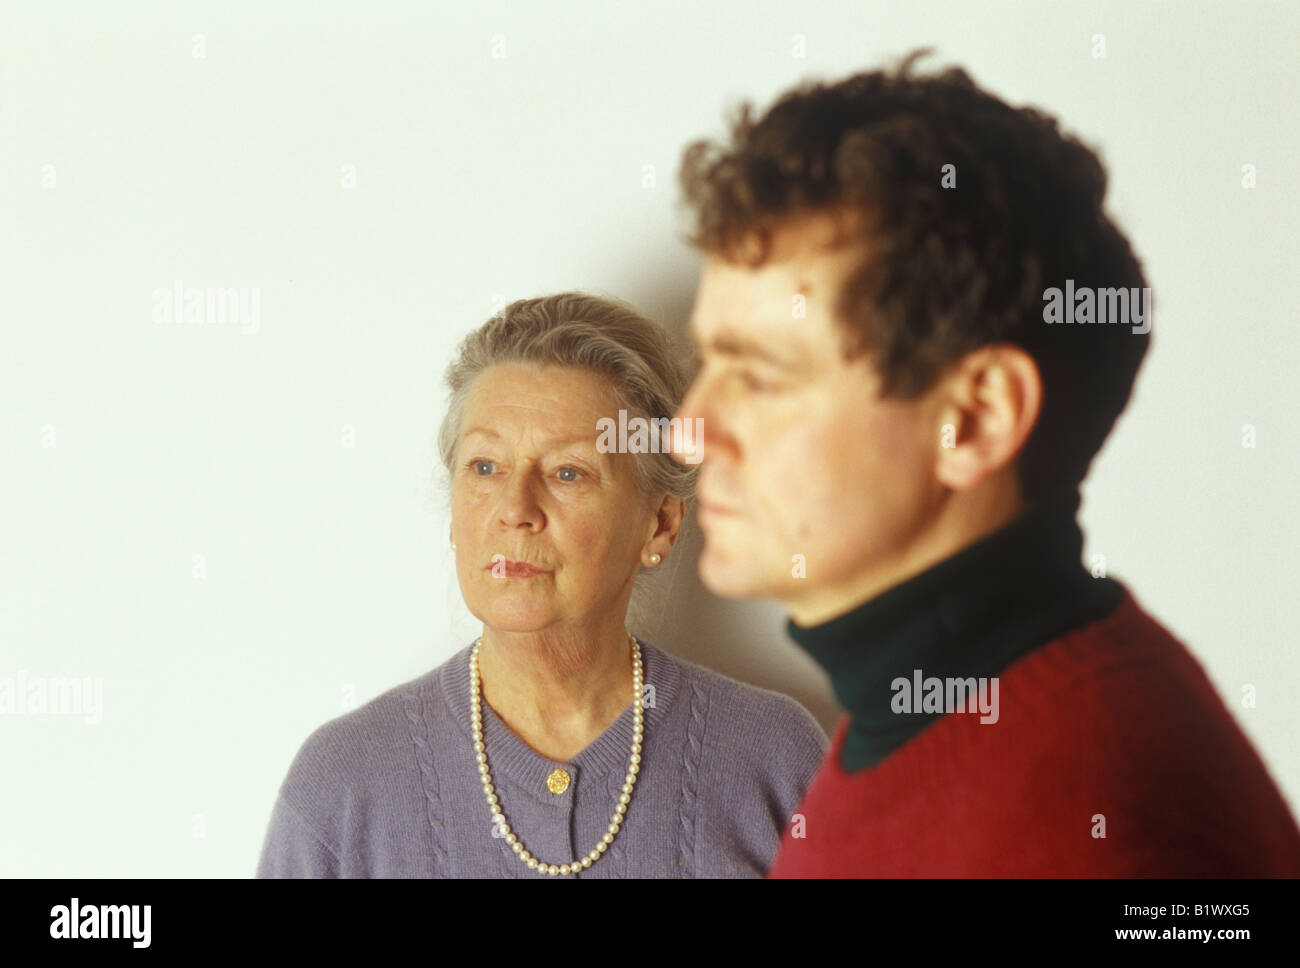 profiles of older woman and younger man - Stock Image